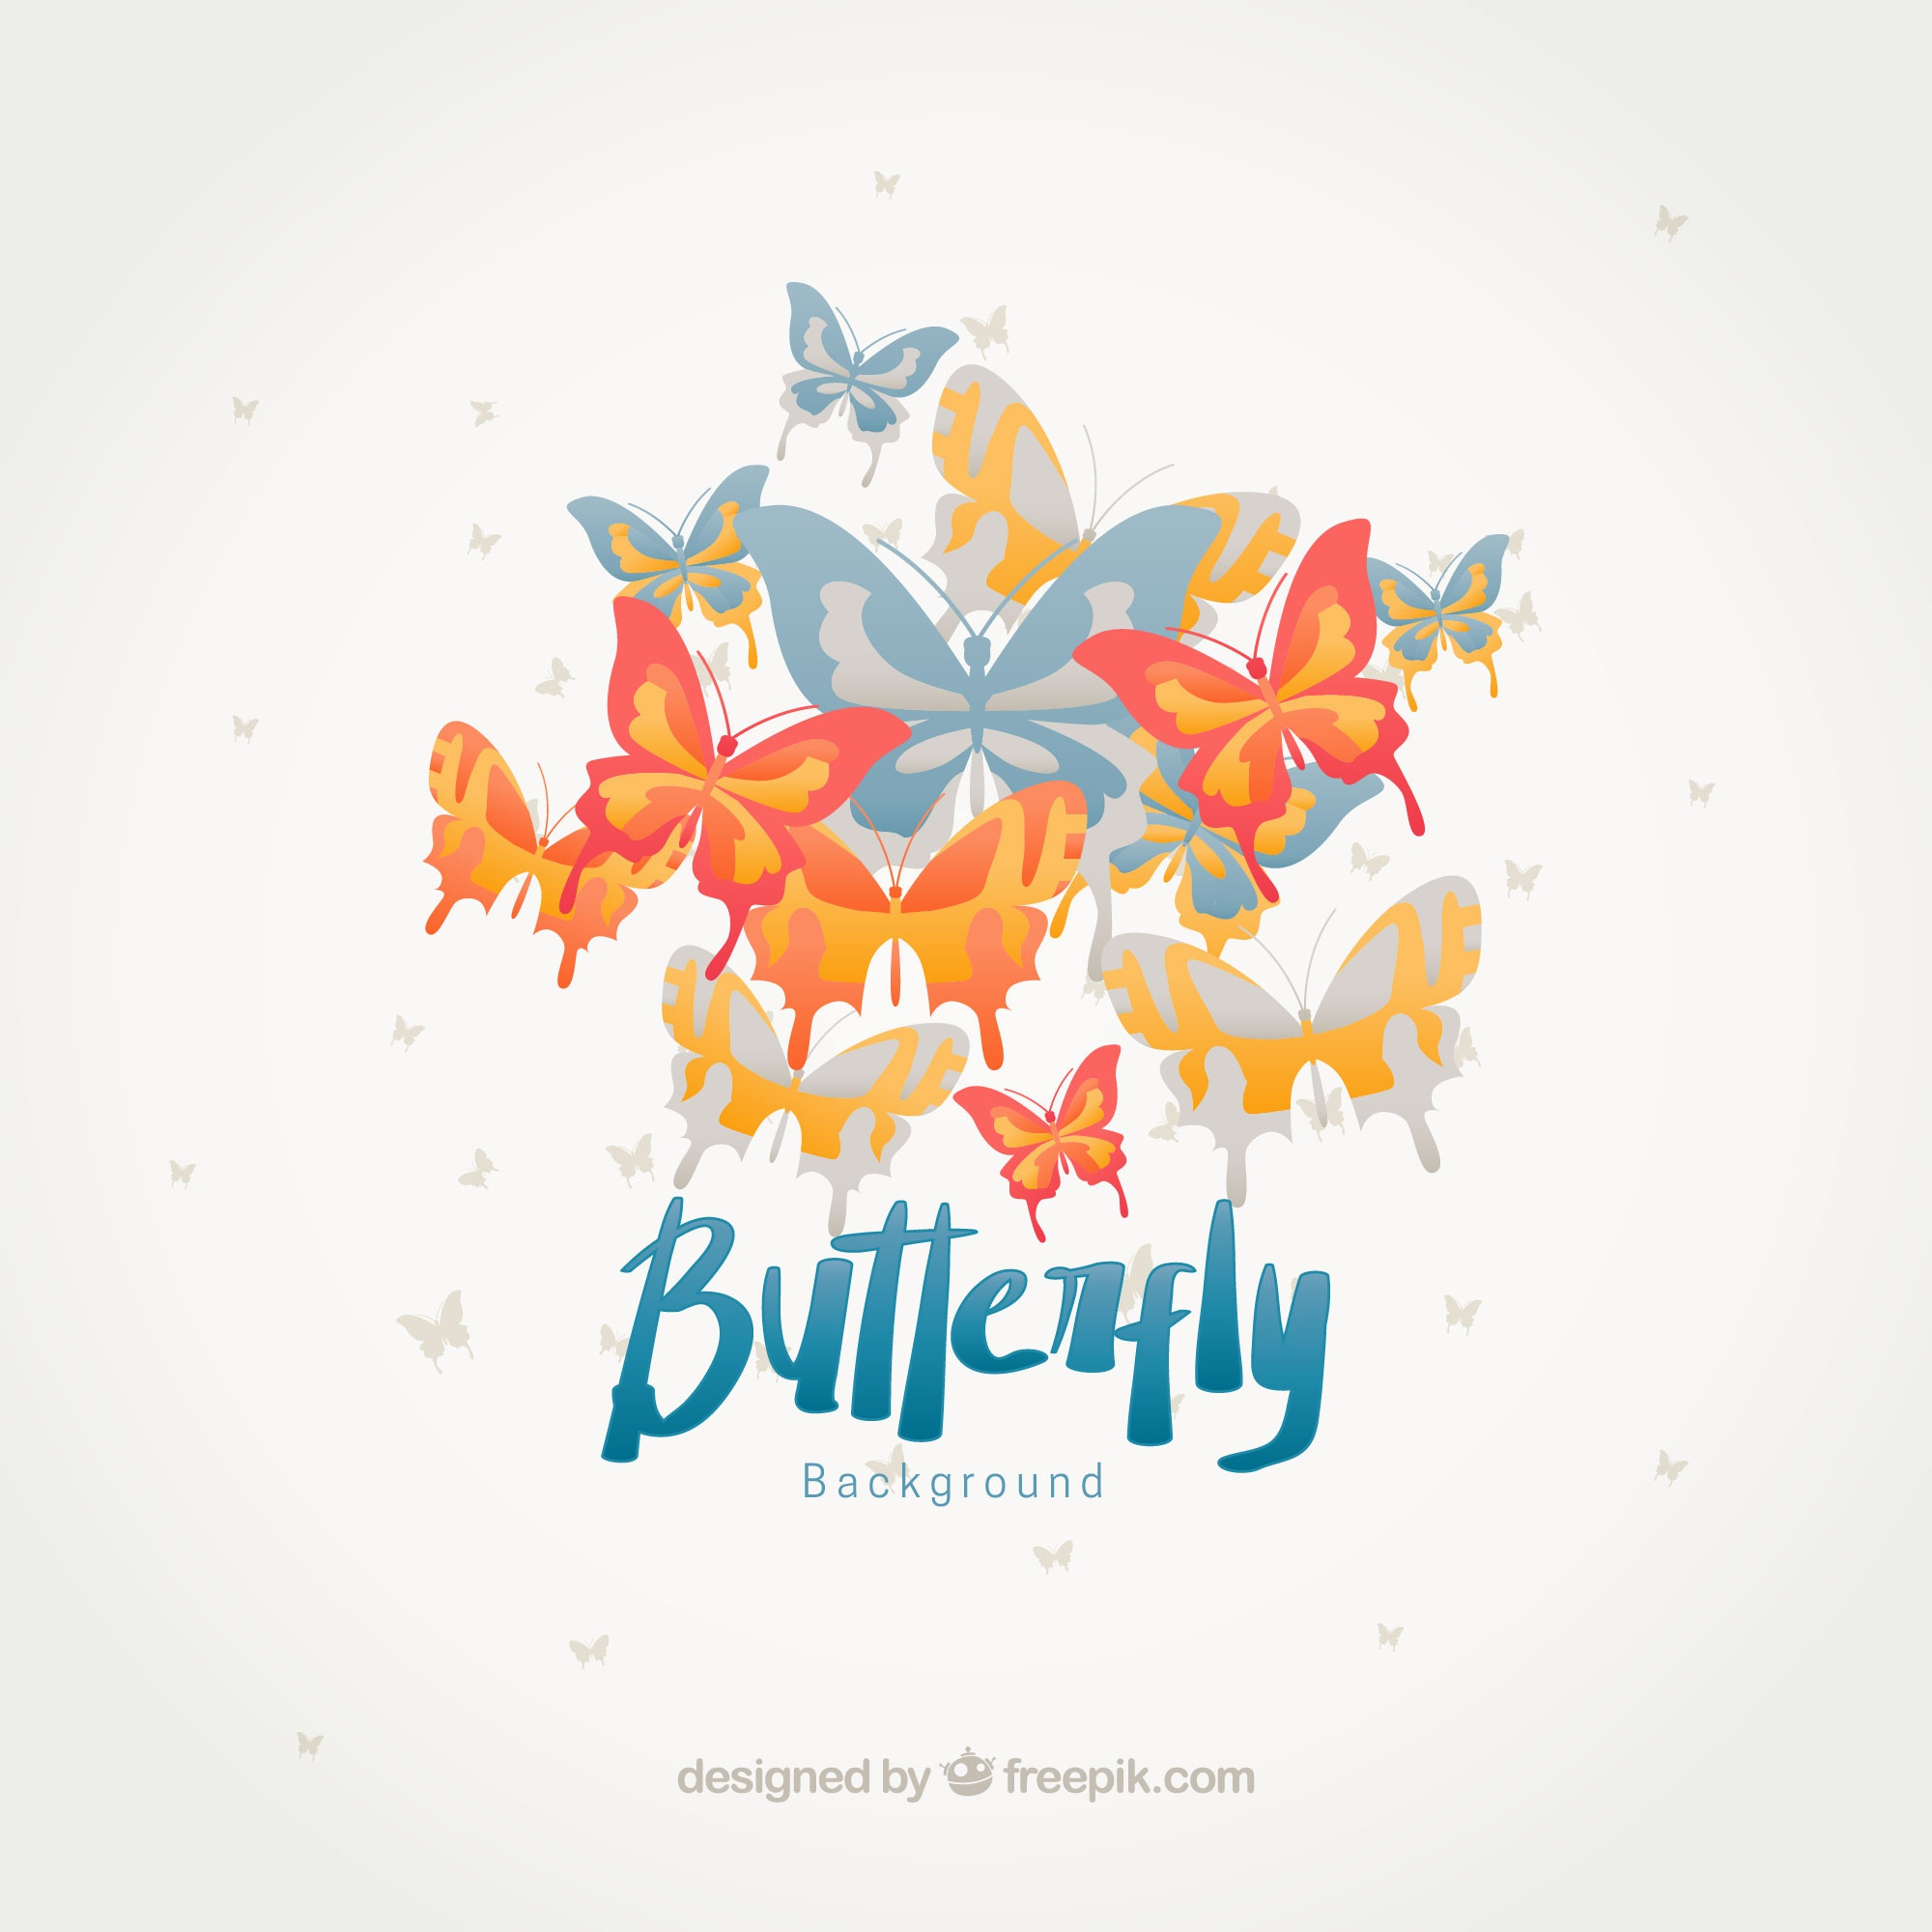 Flat background of butterflies